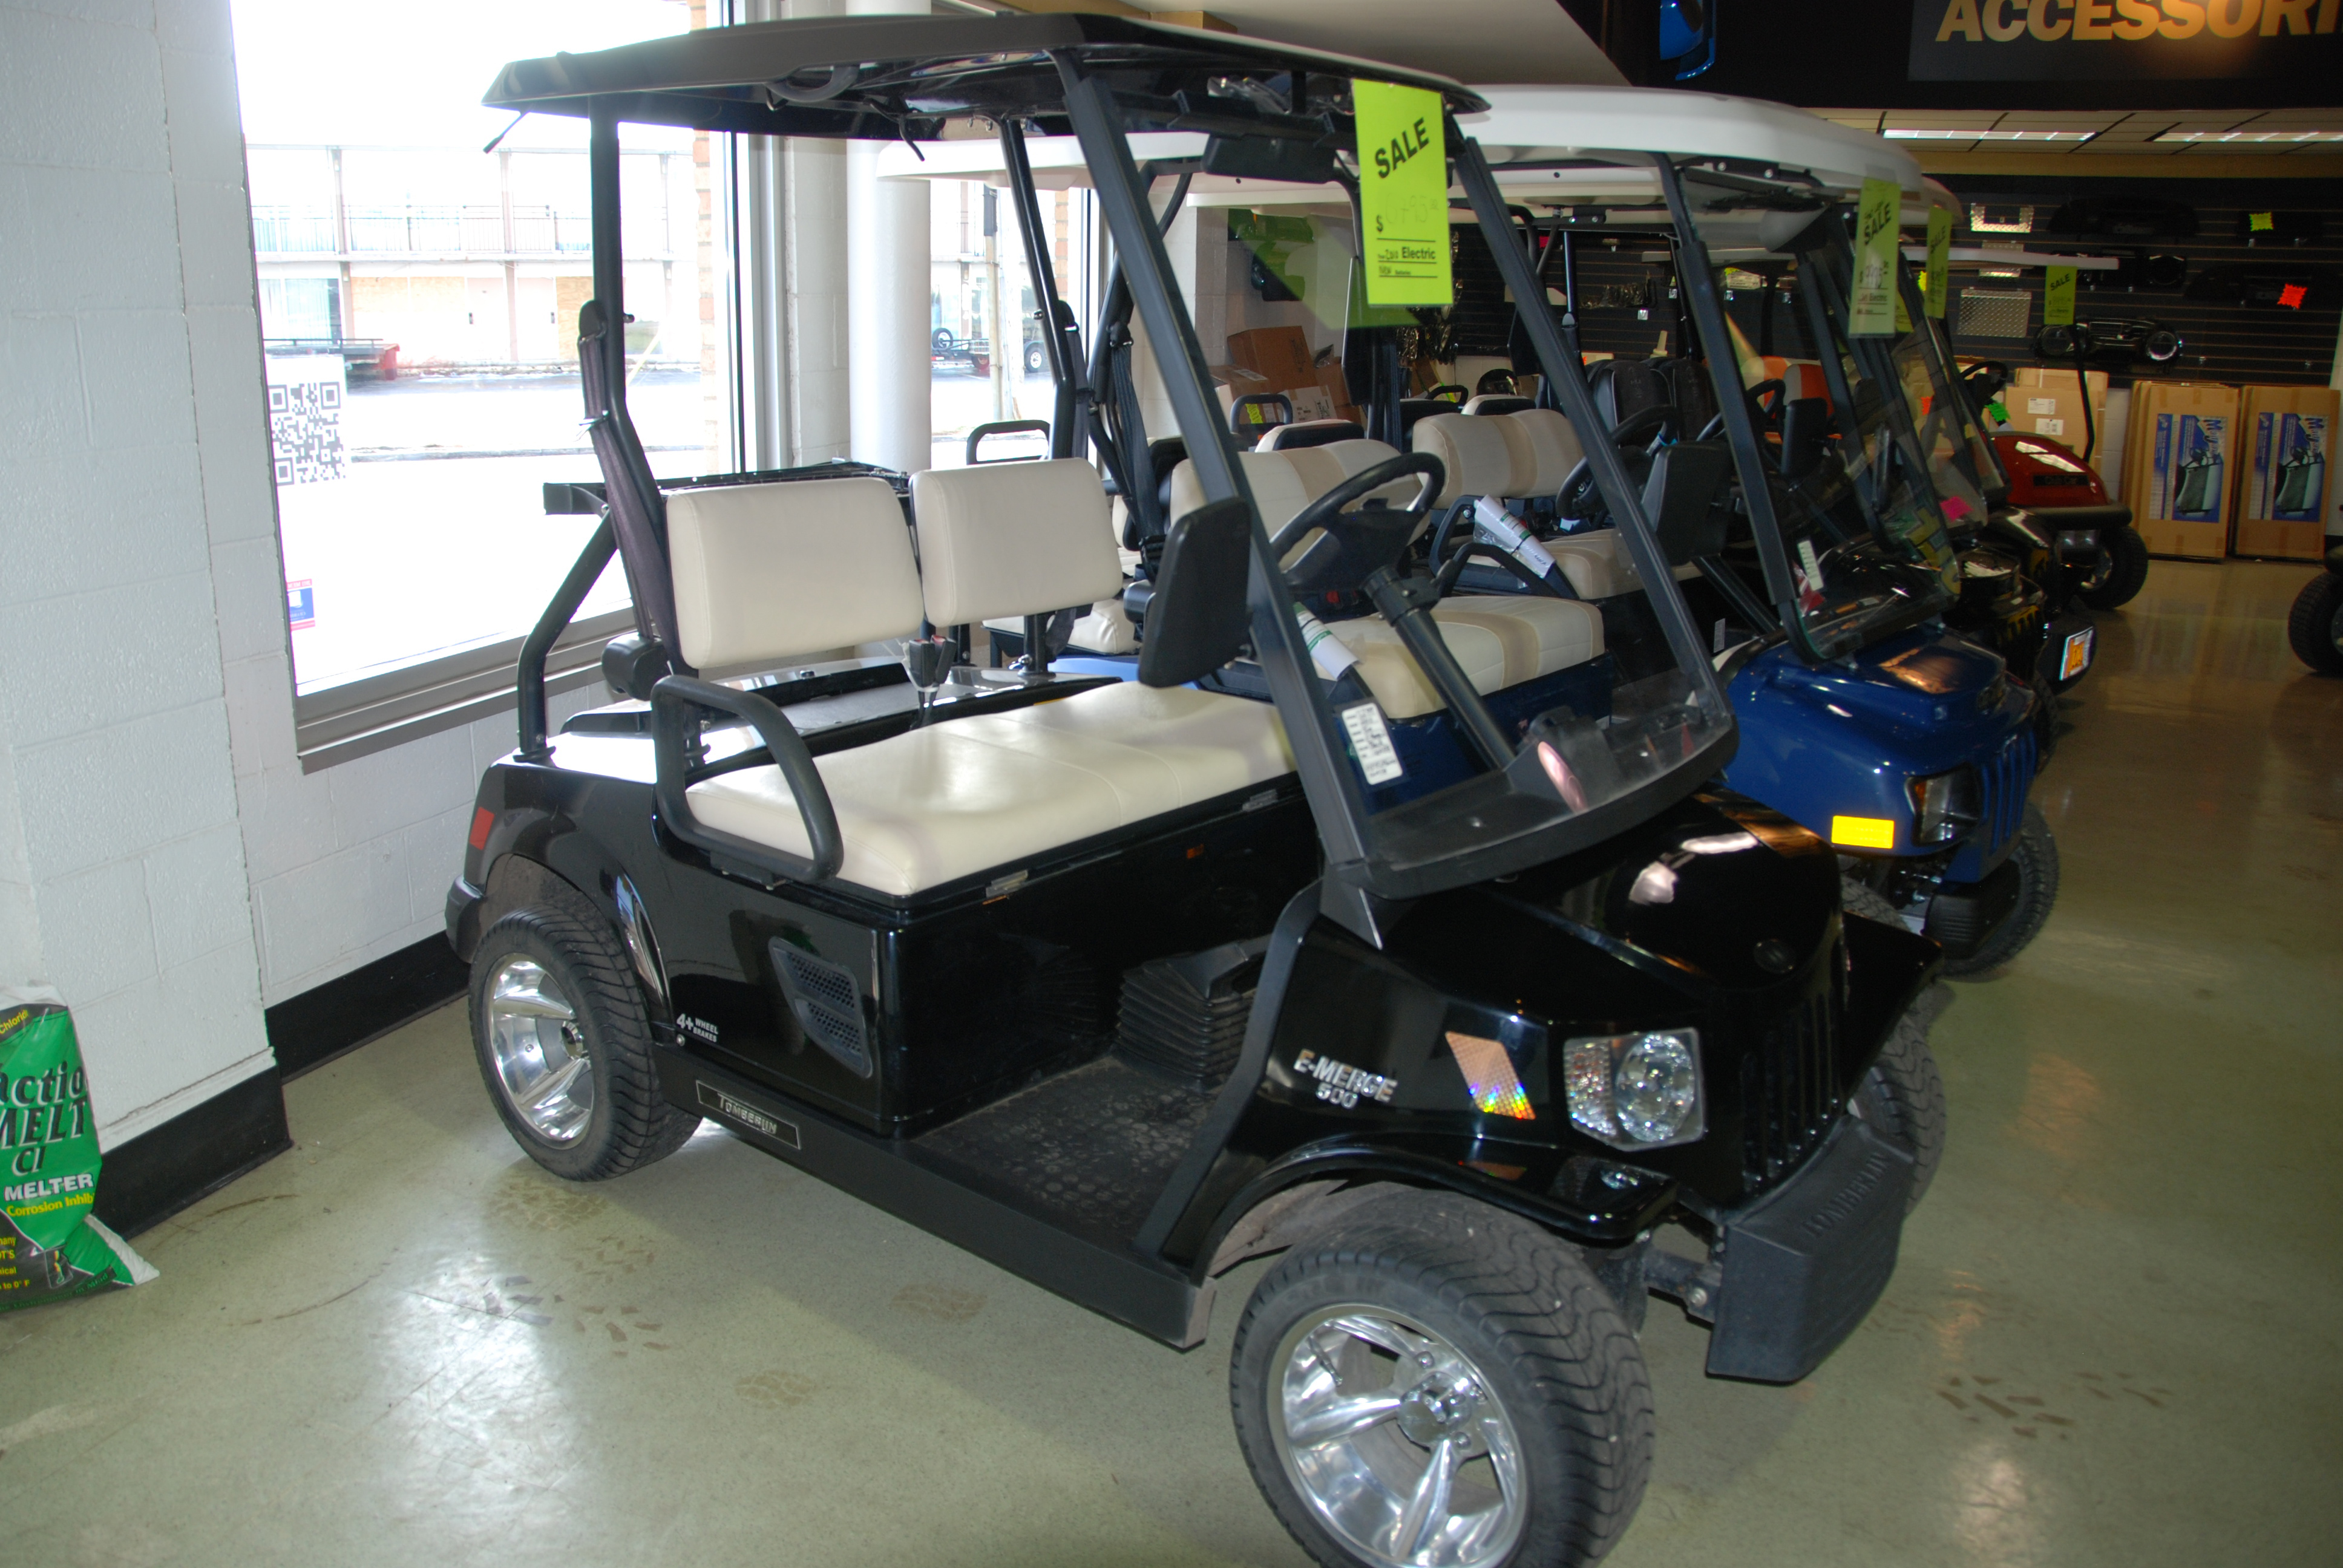 2010 Tomberlin Emerge 500 Electric LSV $6495